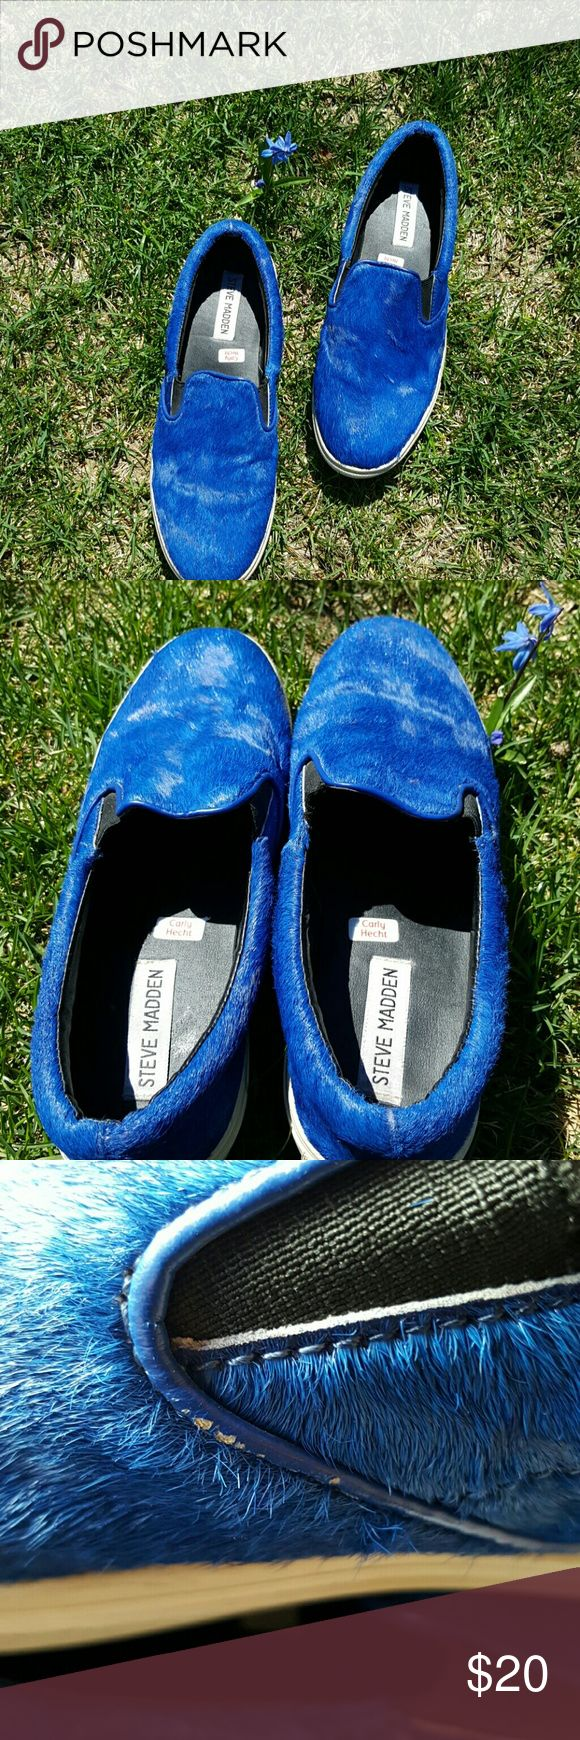 Steve Madden royal blue sneakers 9 Nice pre-loved shoes in good condition. Steve Madden Shoes Sneakers